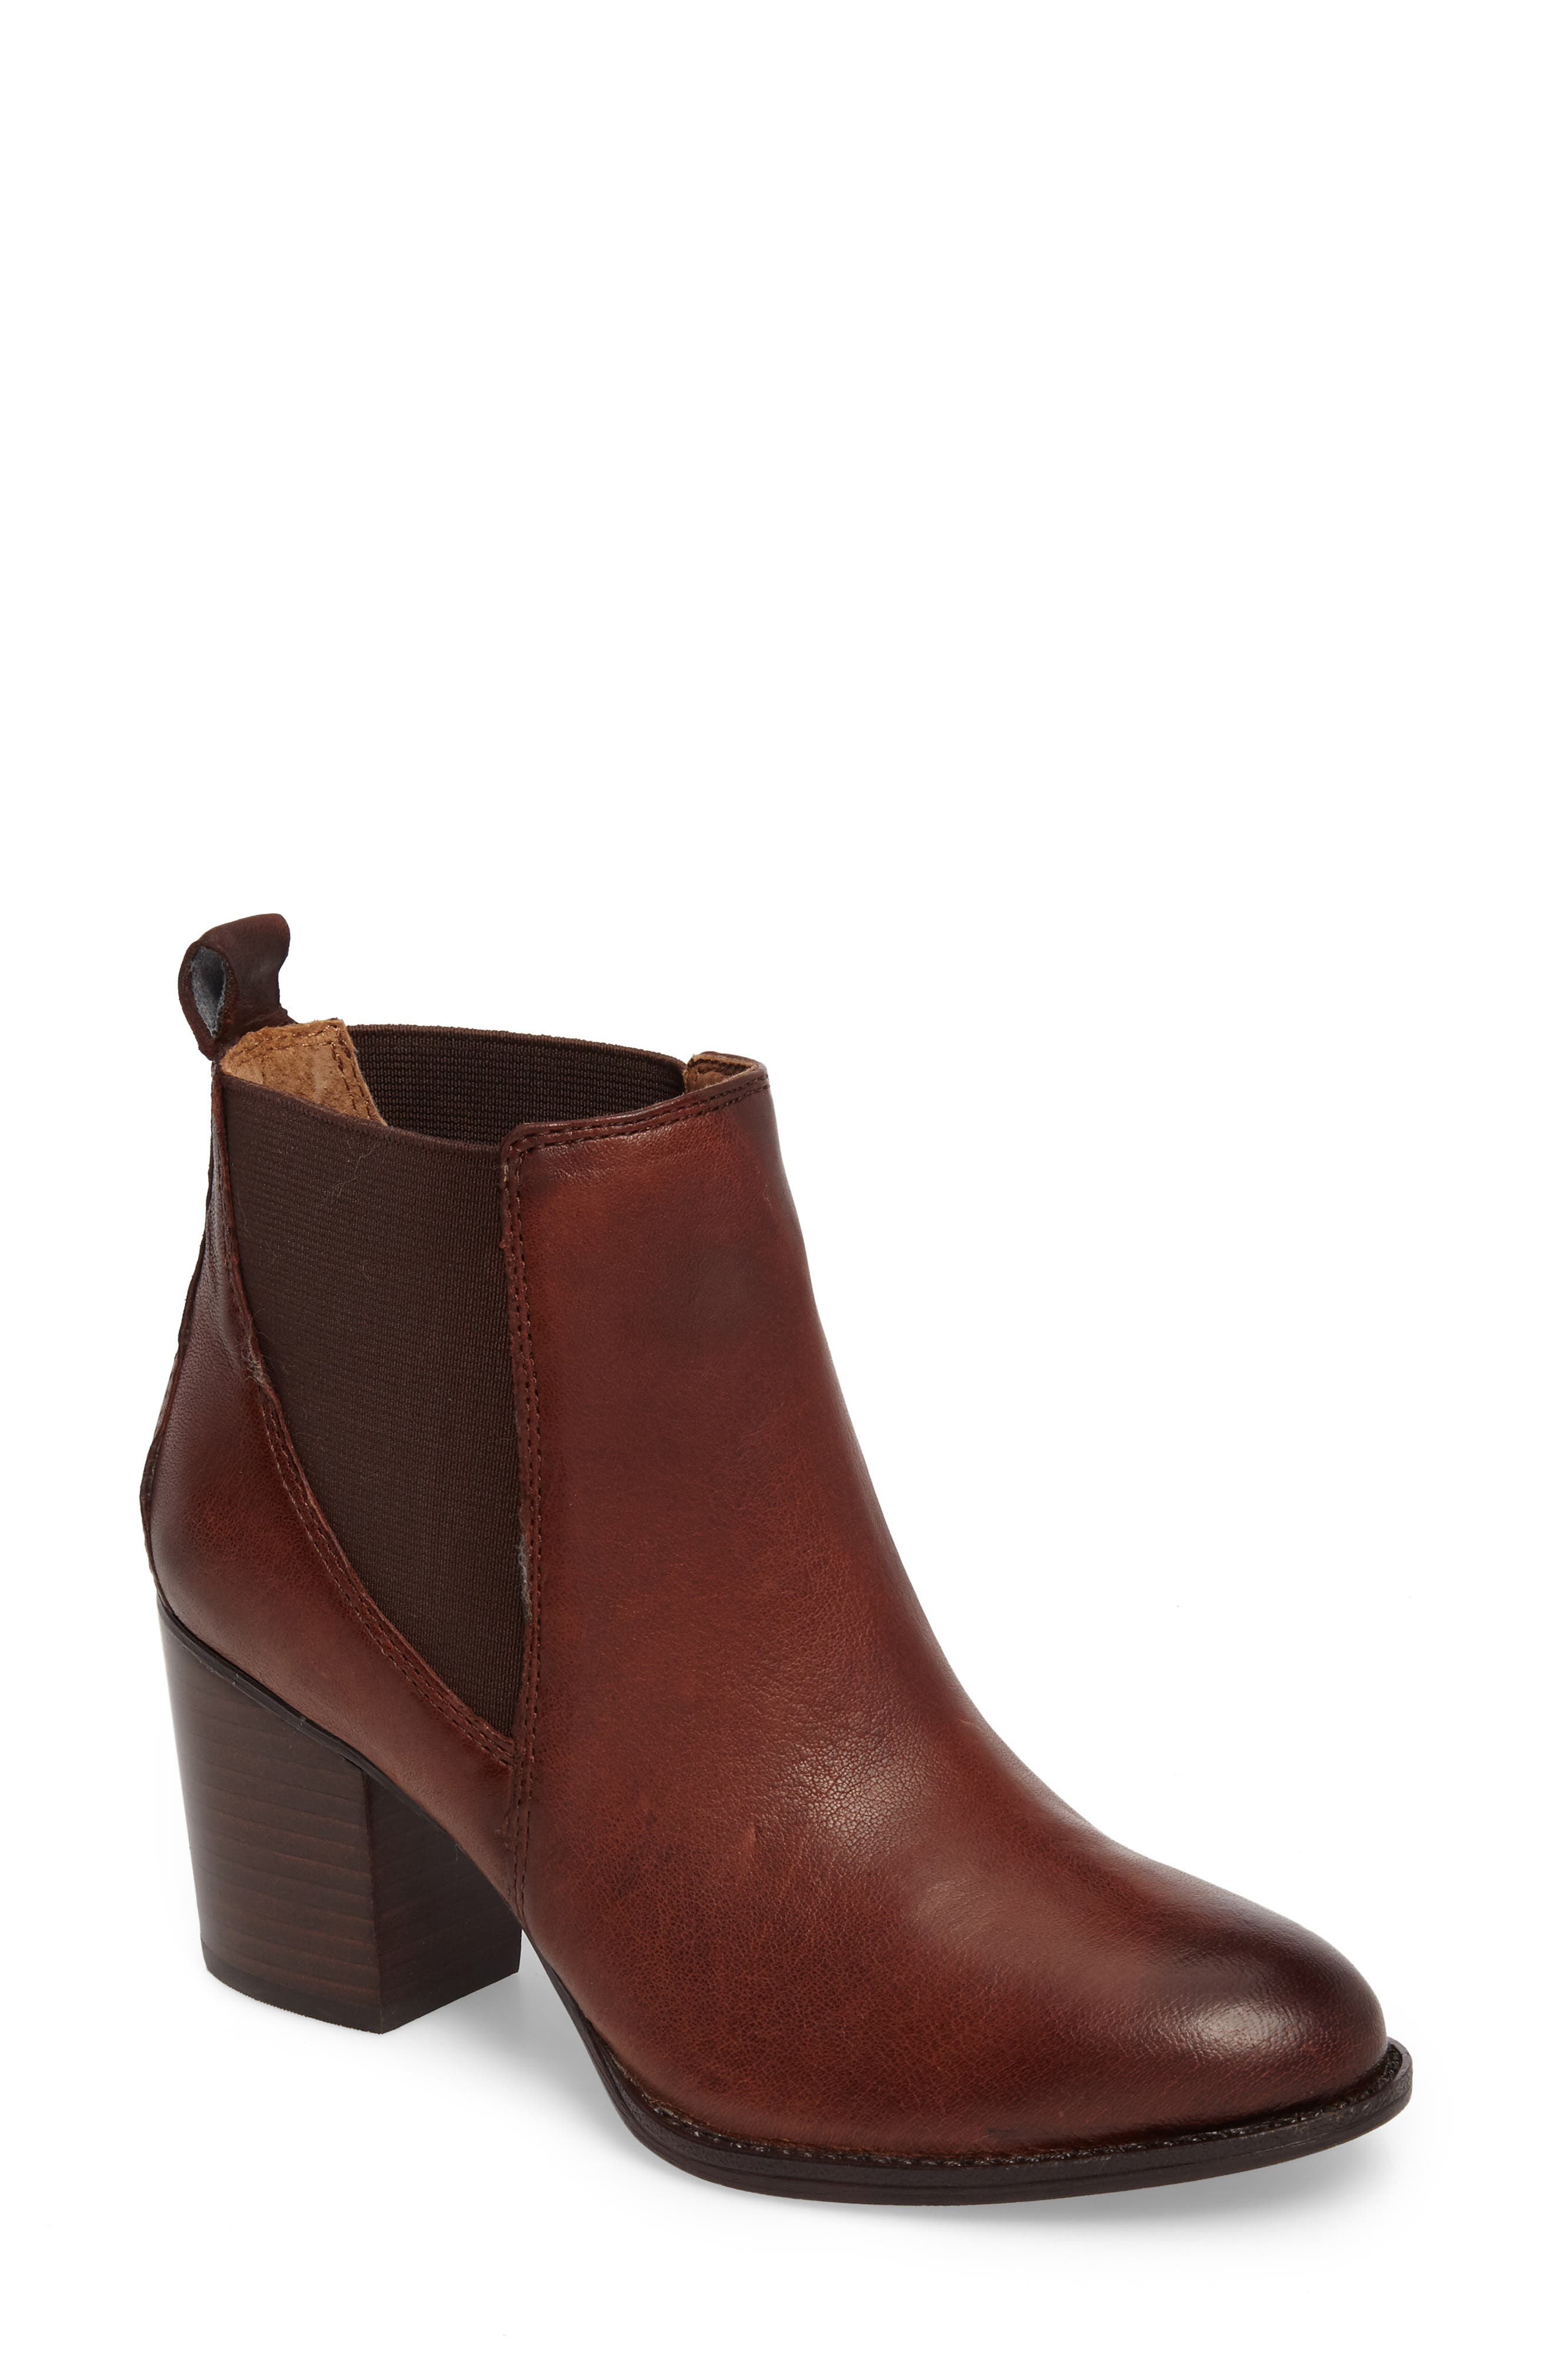 Welling Bootie,                         Main,                         color, CAFFE LEATHER